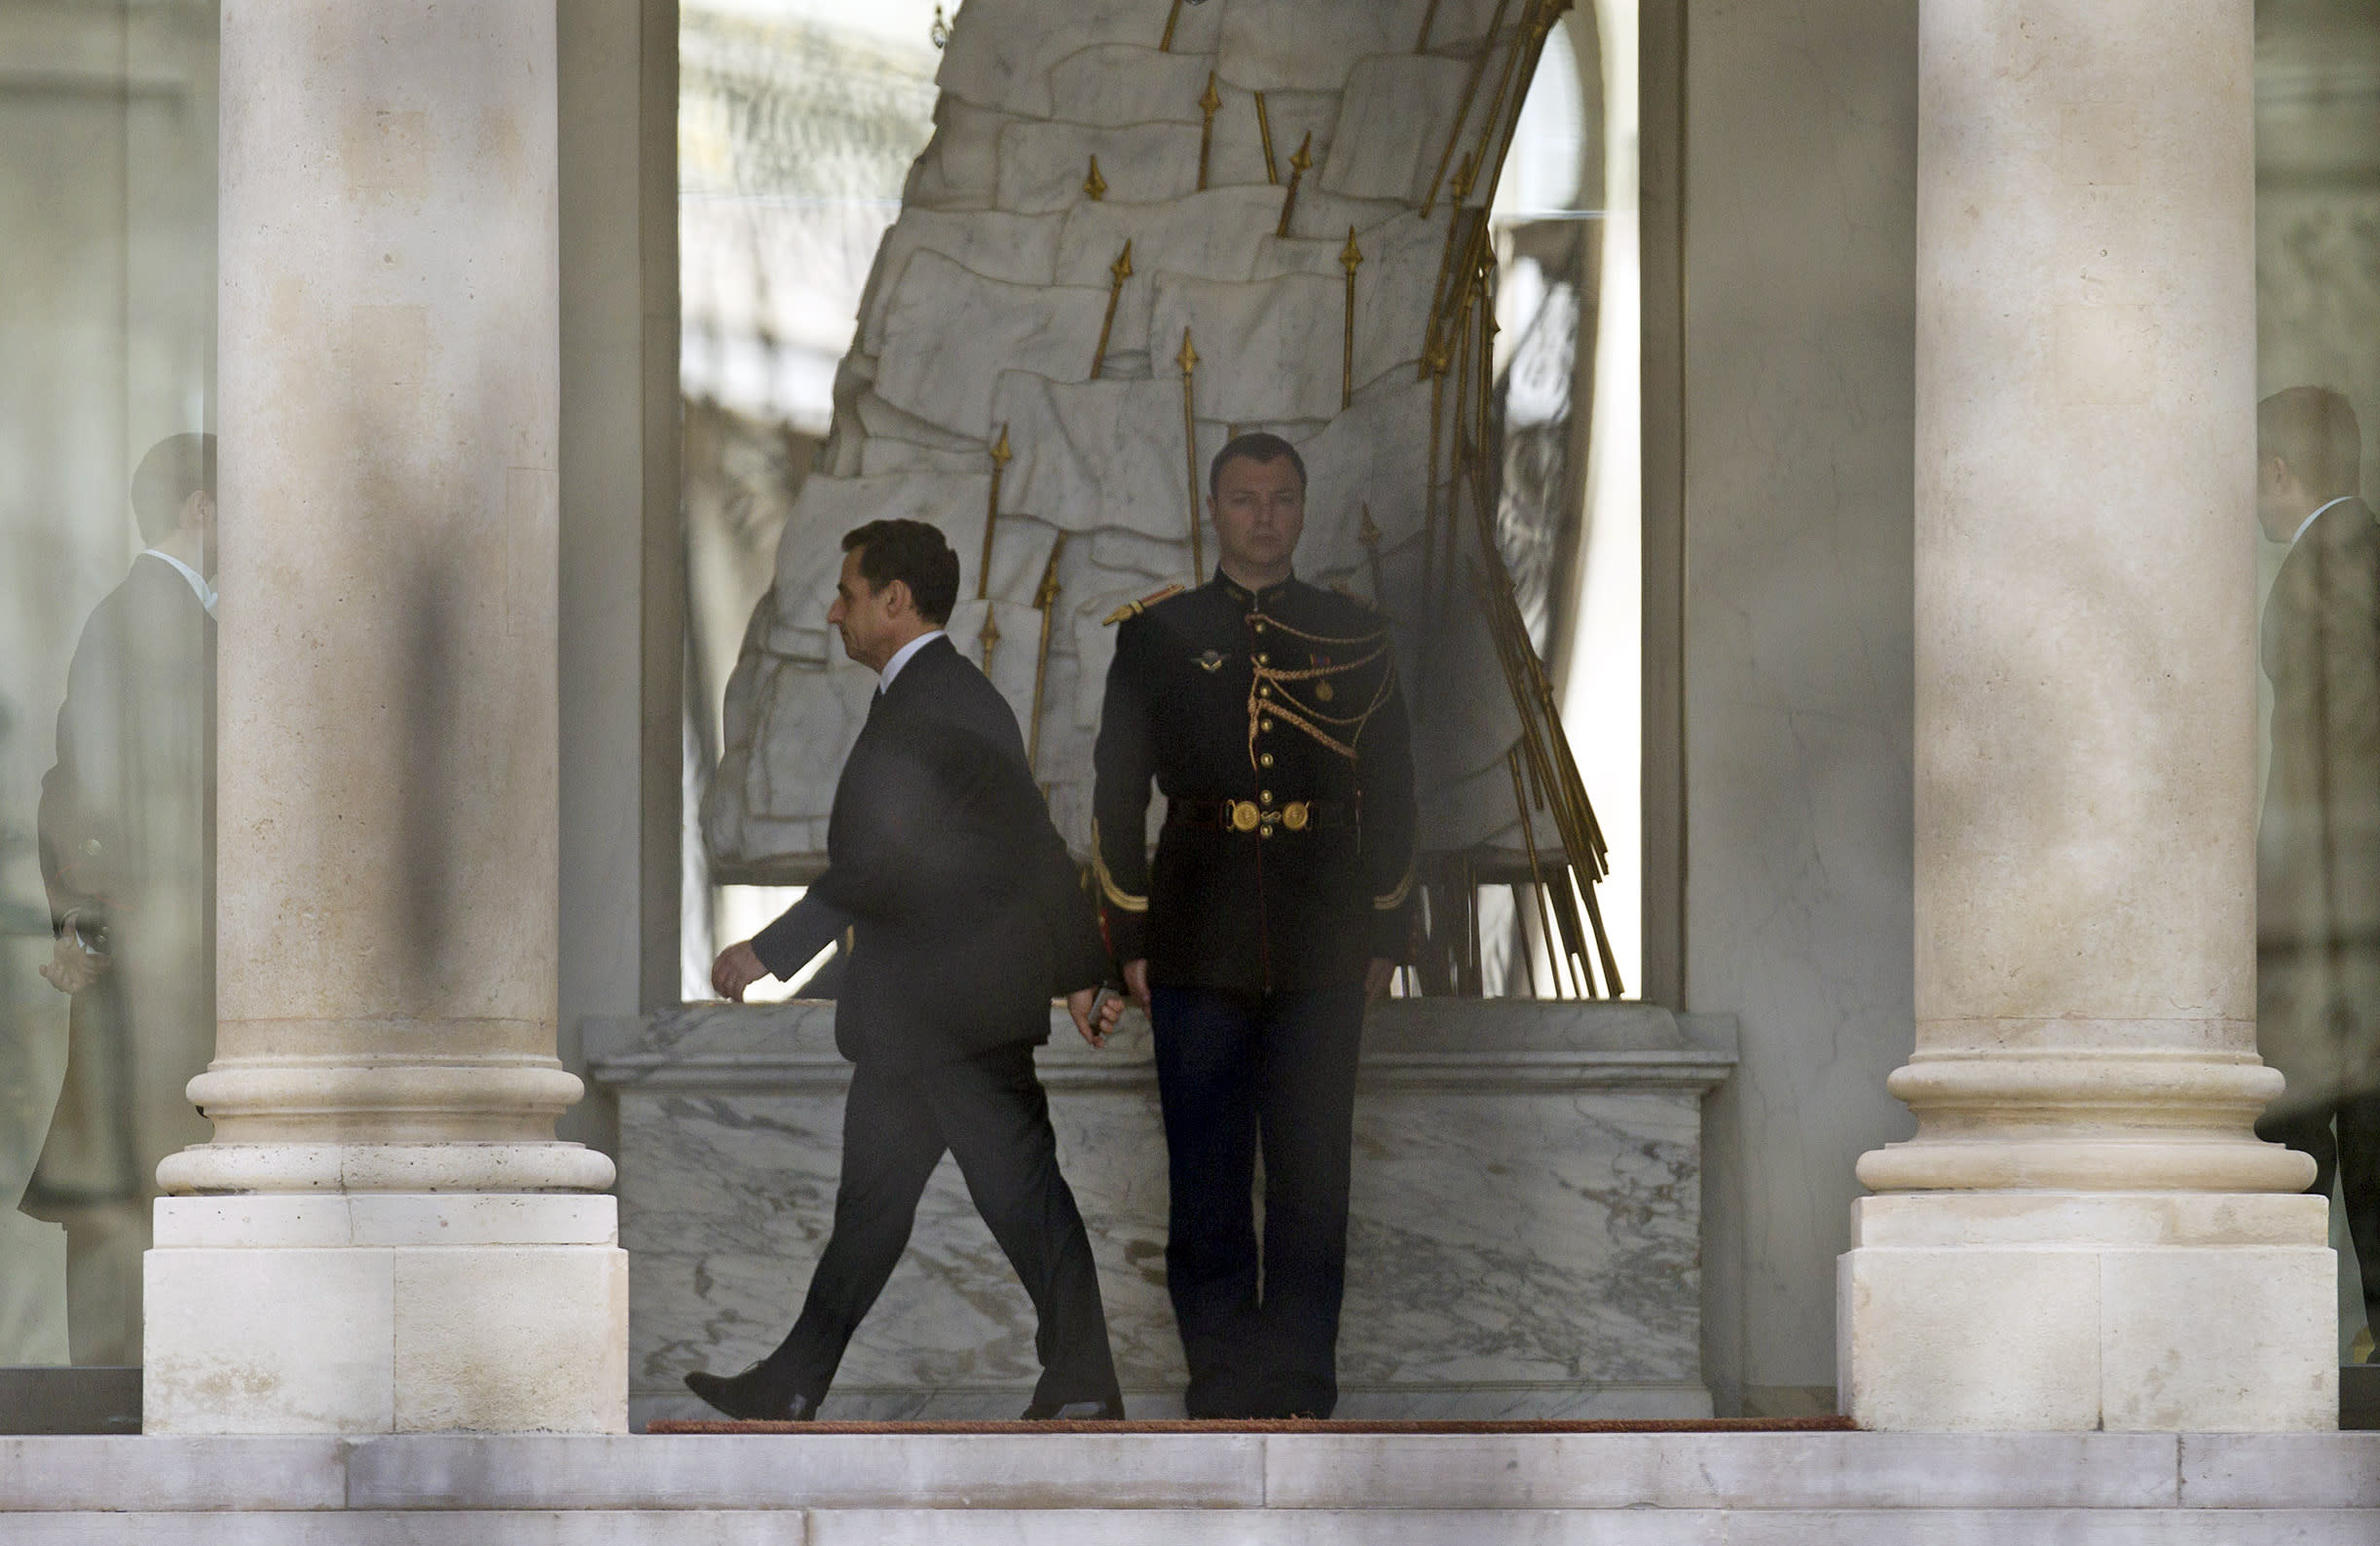 Outgoing French President Nicolas Sarkozy walks along the hallway at Elysee palace in Paris, Monday May 7, 2012. France handed the presidency to leftist Francois Hollande, a champion of government stimulus programs who says the state should protect the downtrodden, a victory that could deal a death blow to the drive for austerity that has been the hallmark of Europe in recent years. (AP Photo/Jacques Brinon)